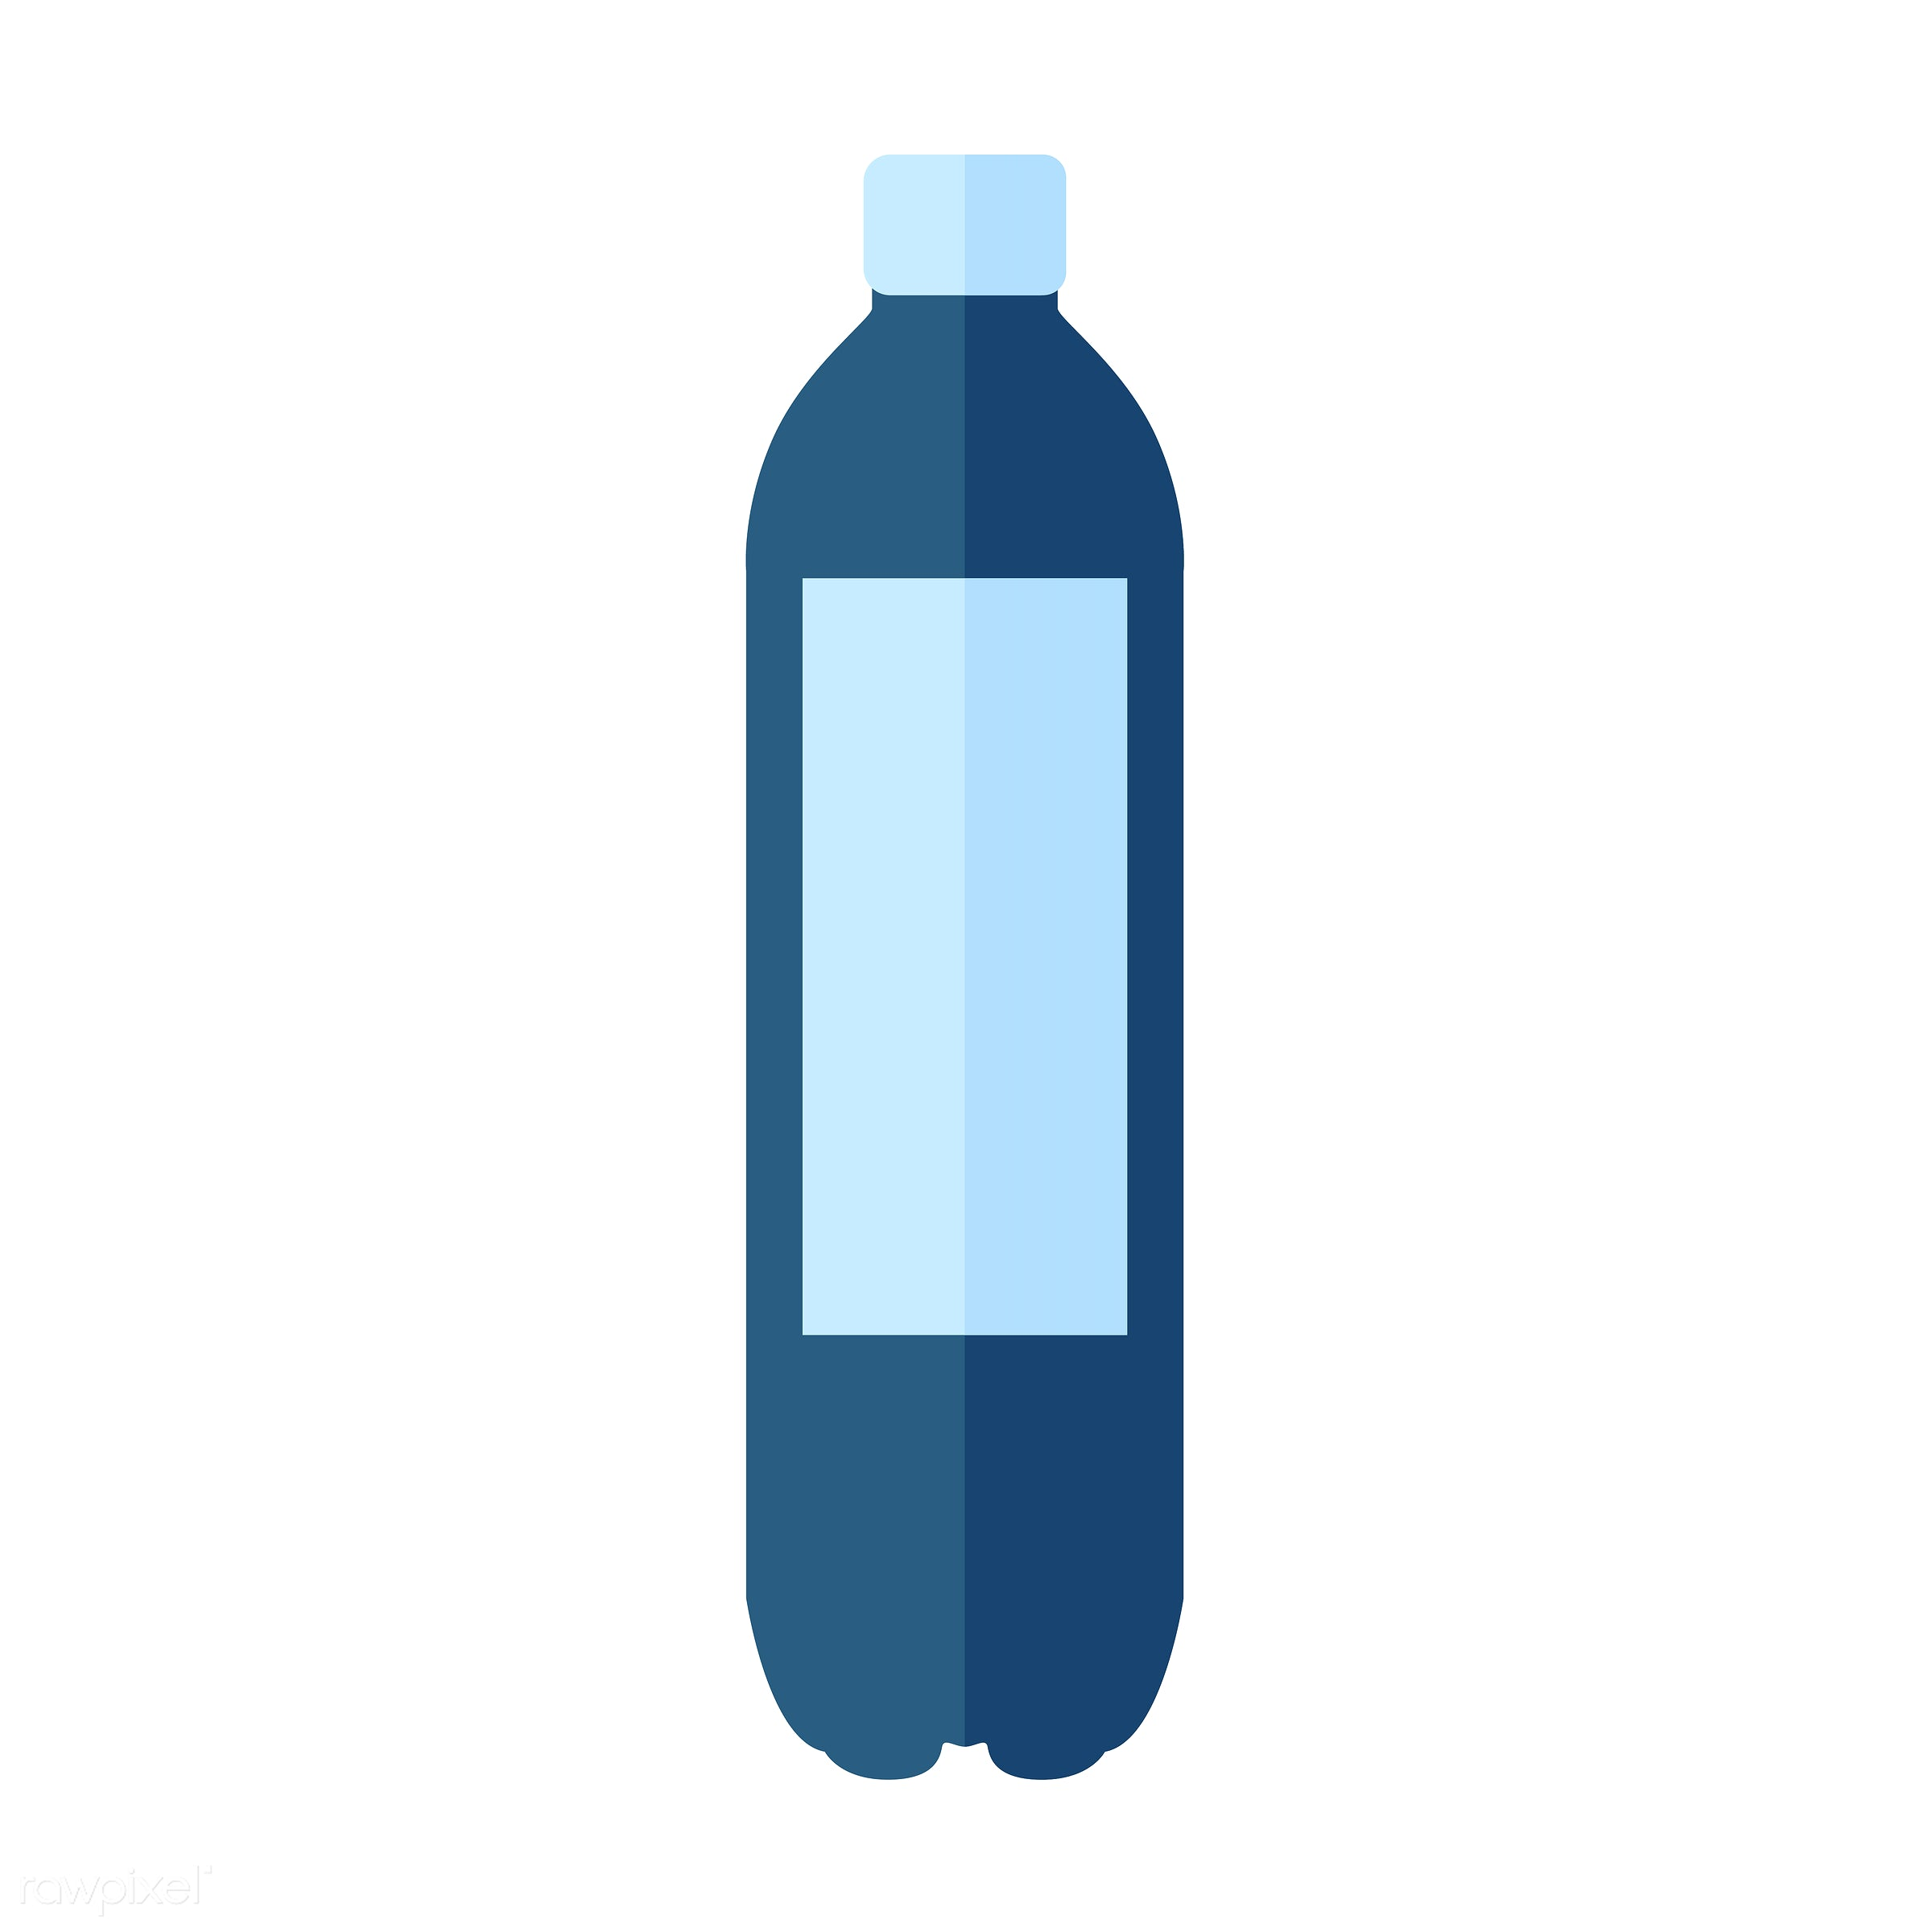 vector, graphic, illustration, icon, symbol, colorful, cute, drink, beverage, water, blue, plastic bottle